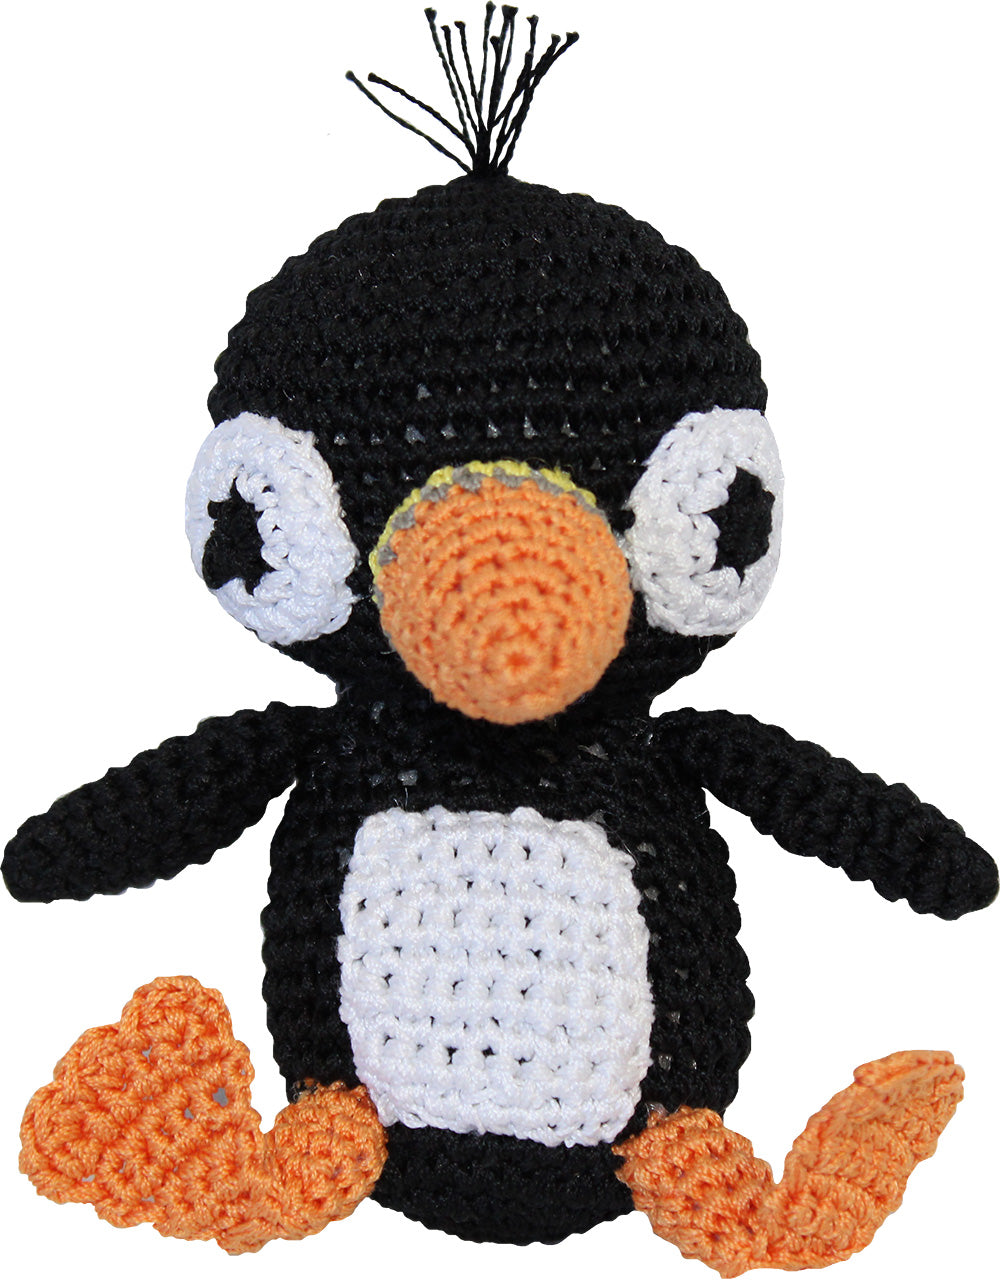 Puffin Knit Toy